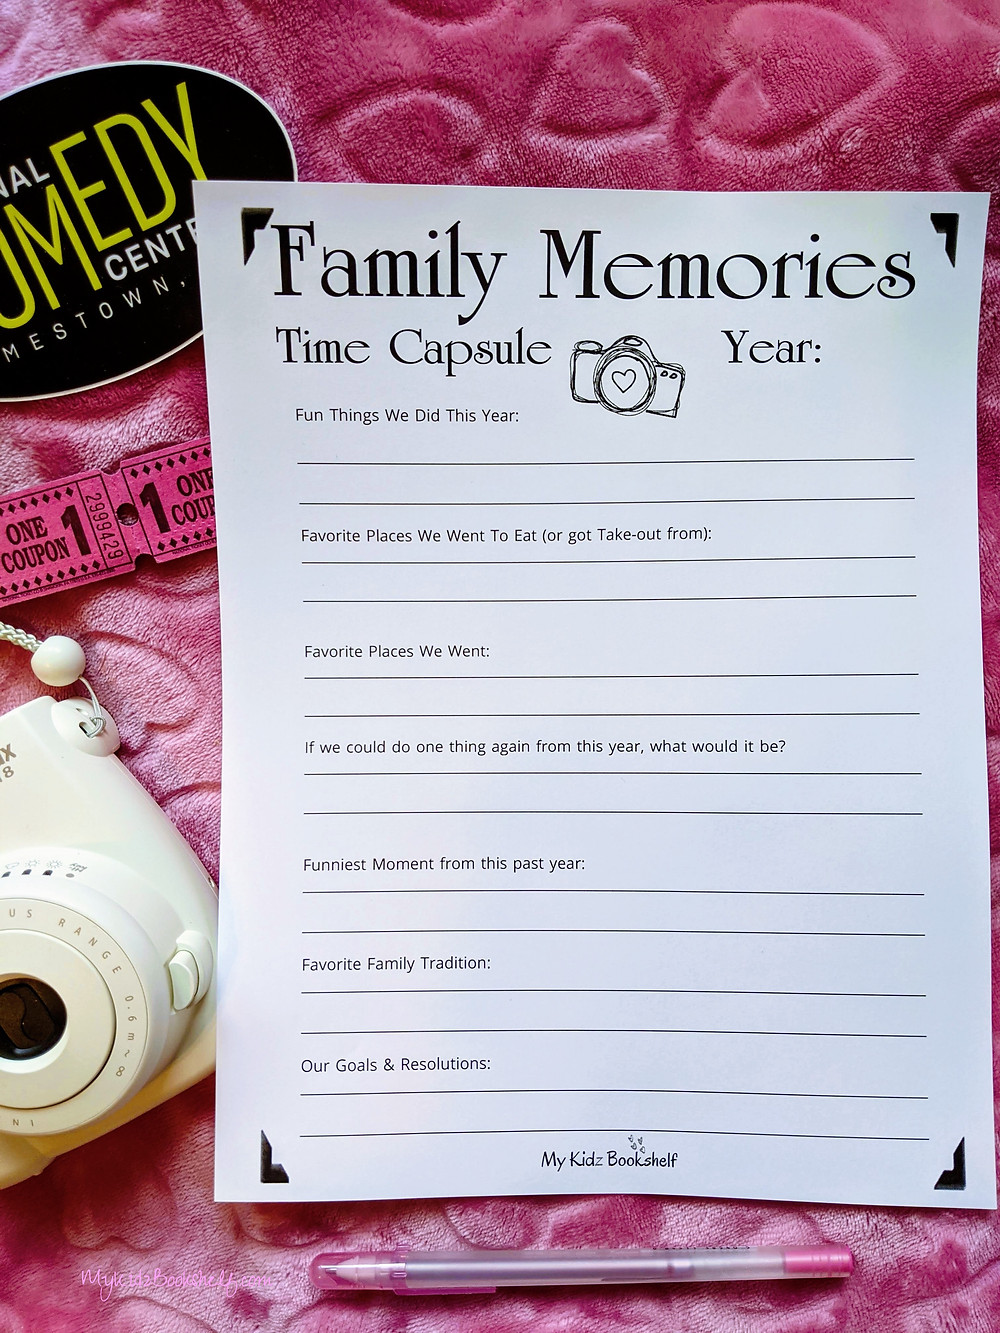 Family-Memories-Time-Capsule-Fill-in-paper-with-camera-and-tickets-in-the-background